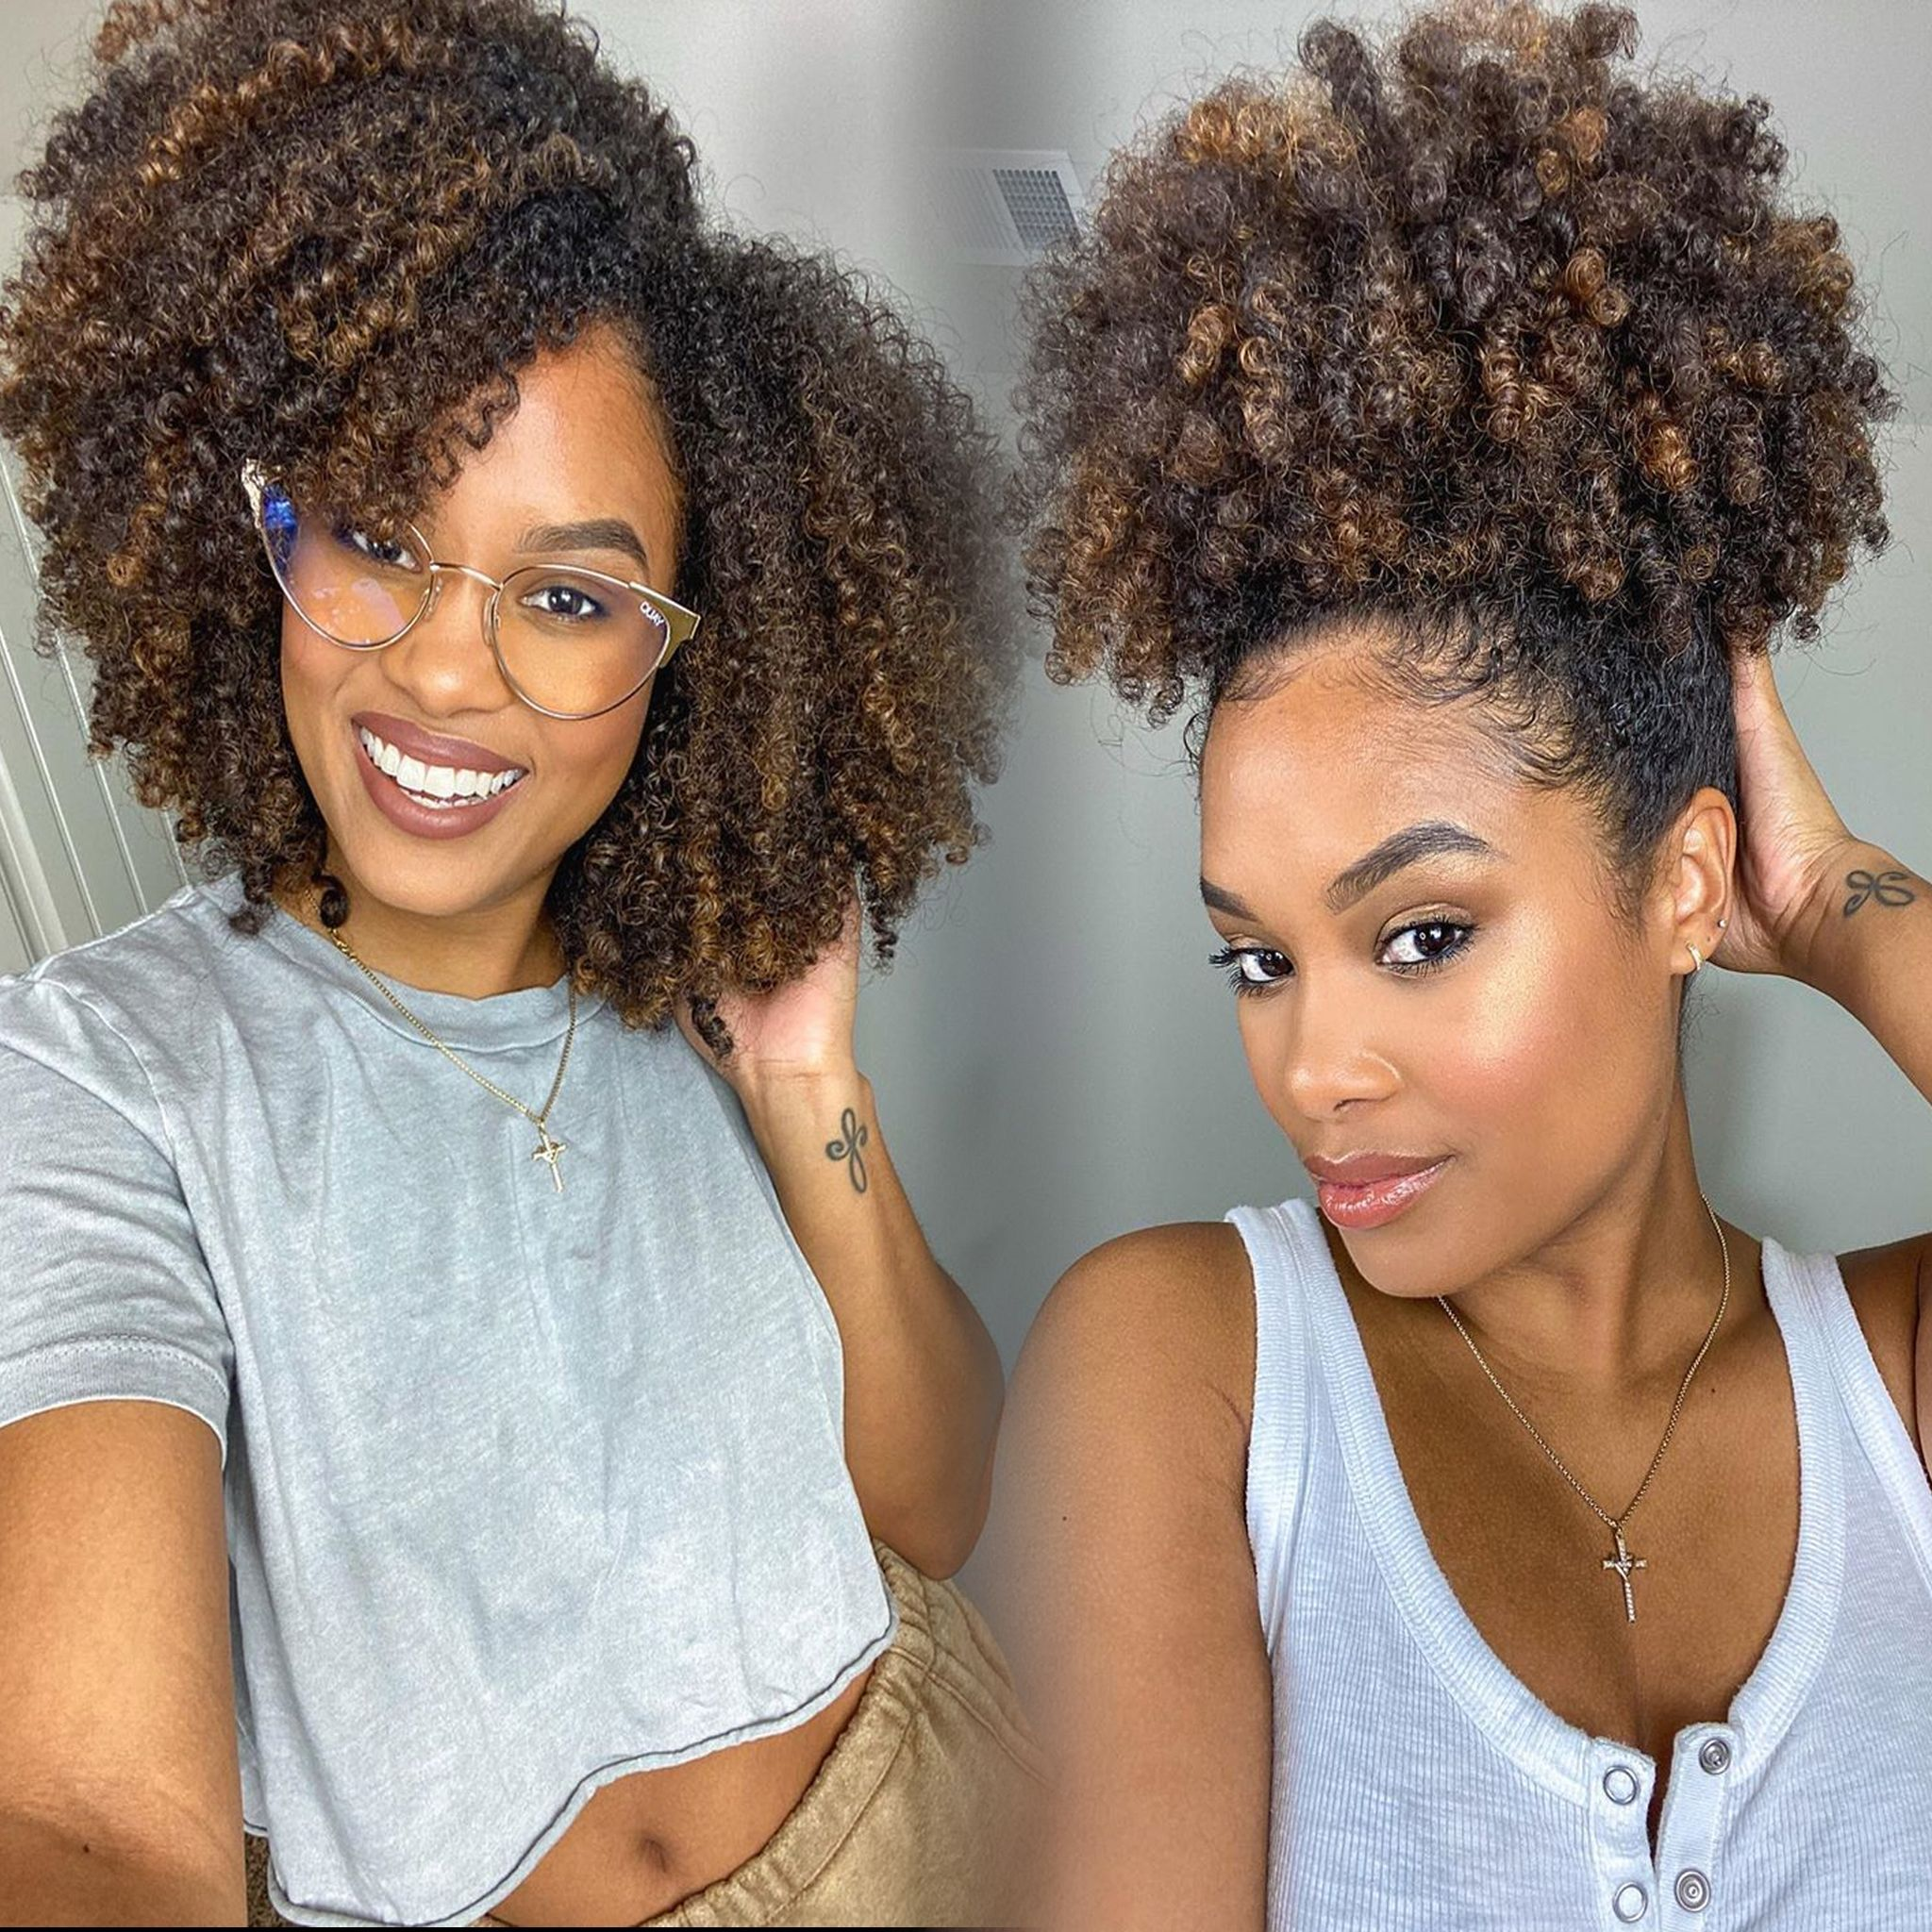 My Natural Hair Style Natural Hair Website In 2020 Natural Hair Websites Natural Hair Styles Natural Hair Problems